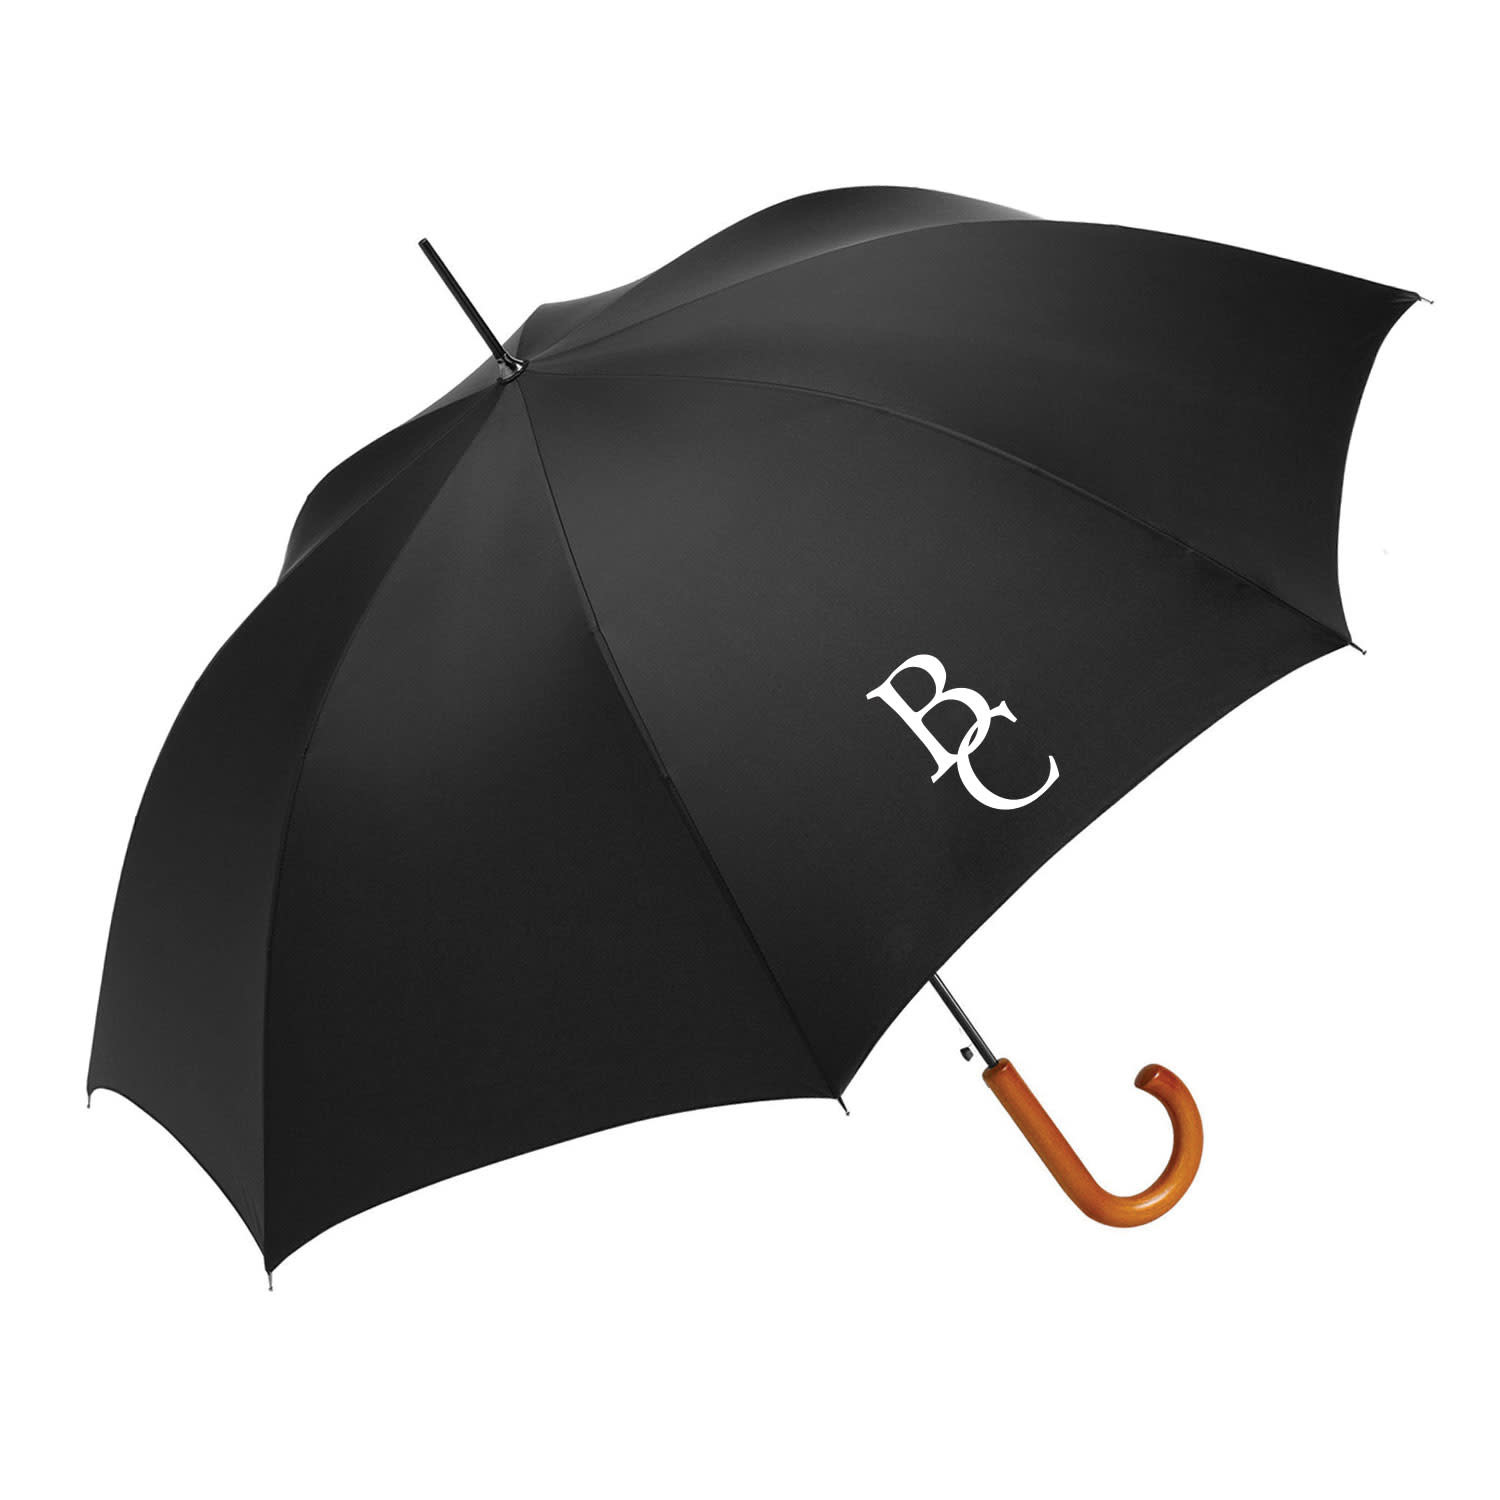 Black  Auto Open Stick BC interlock Umbrella-1